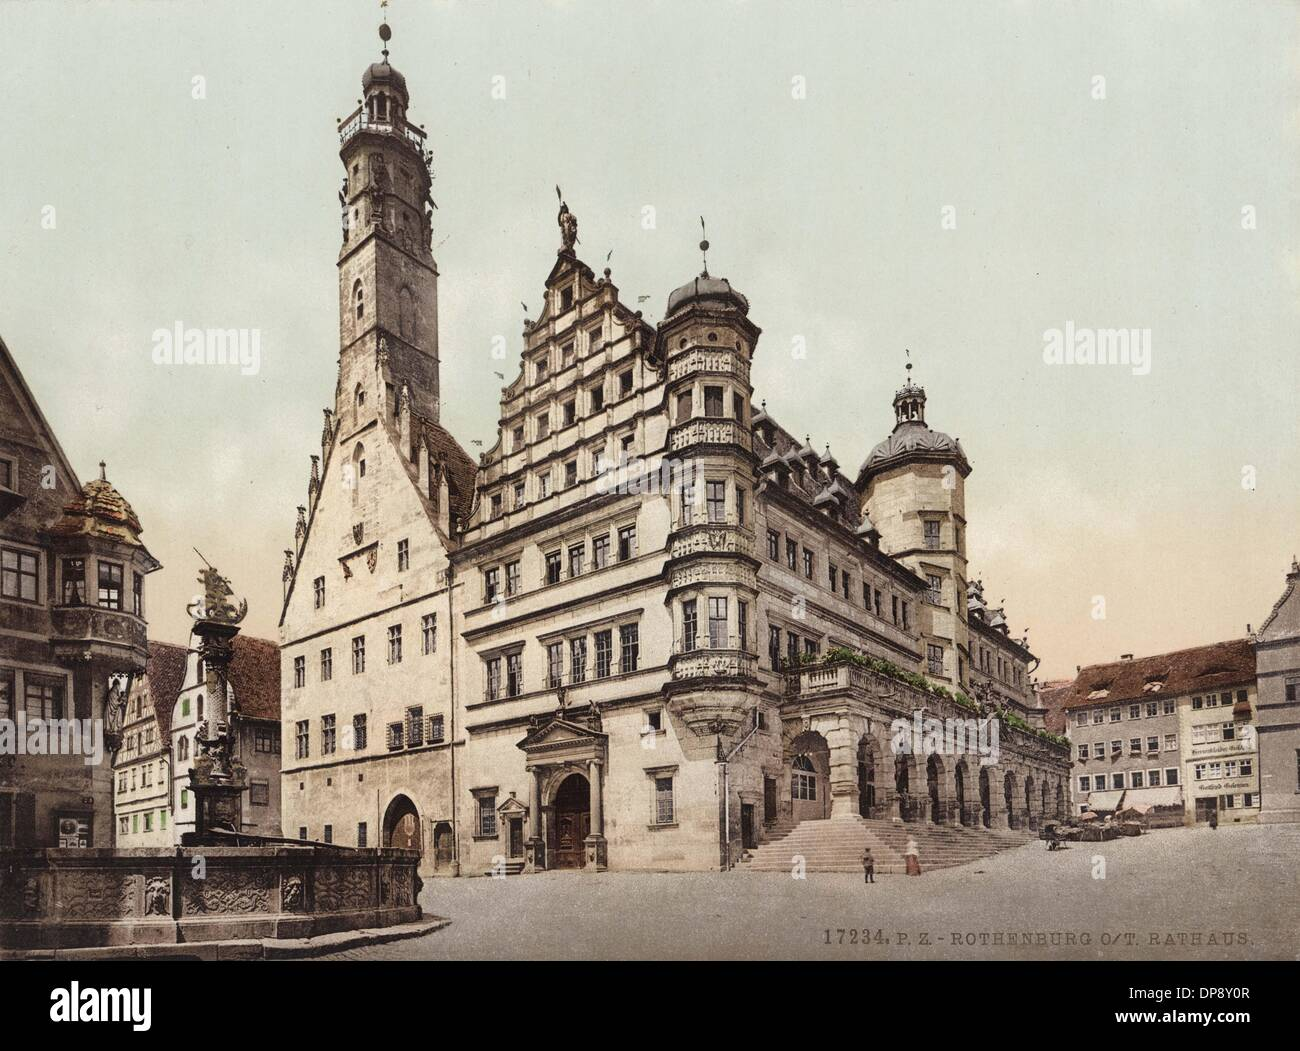 The historical photograph from around 1900 shows town hall and market square of Rothenburg ob der Tauber. The gothic part of the town hall was built between 1250 and 1400. The Renaissance part to the right was built from 1572 to 1578. The arcades were added in 1681. Photo: Collection Sauer - Stock Image